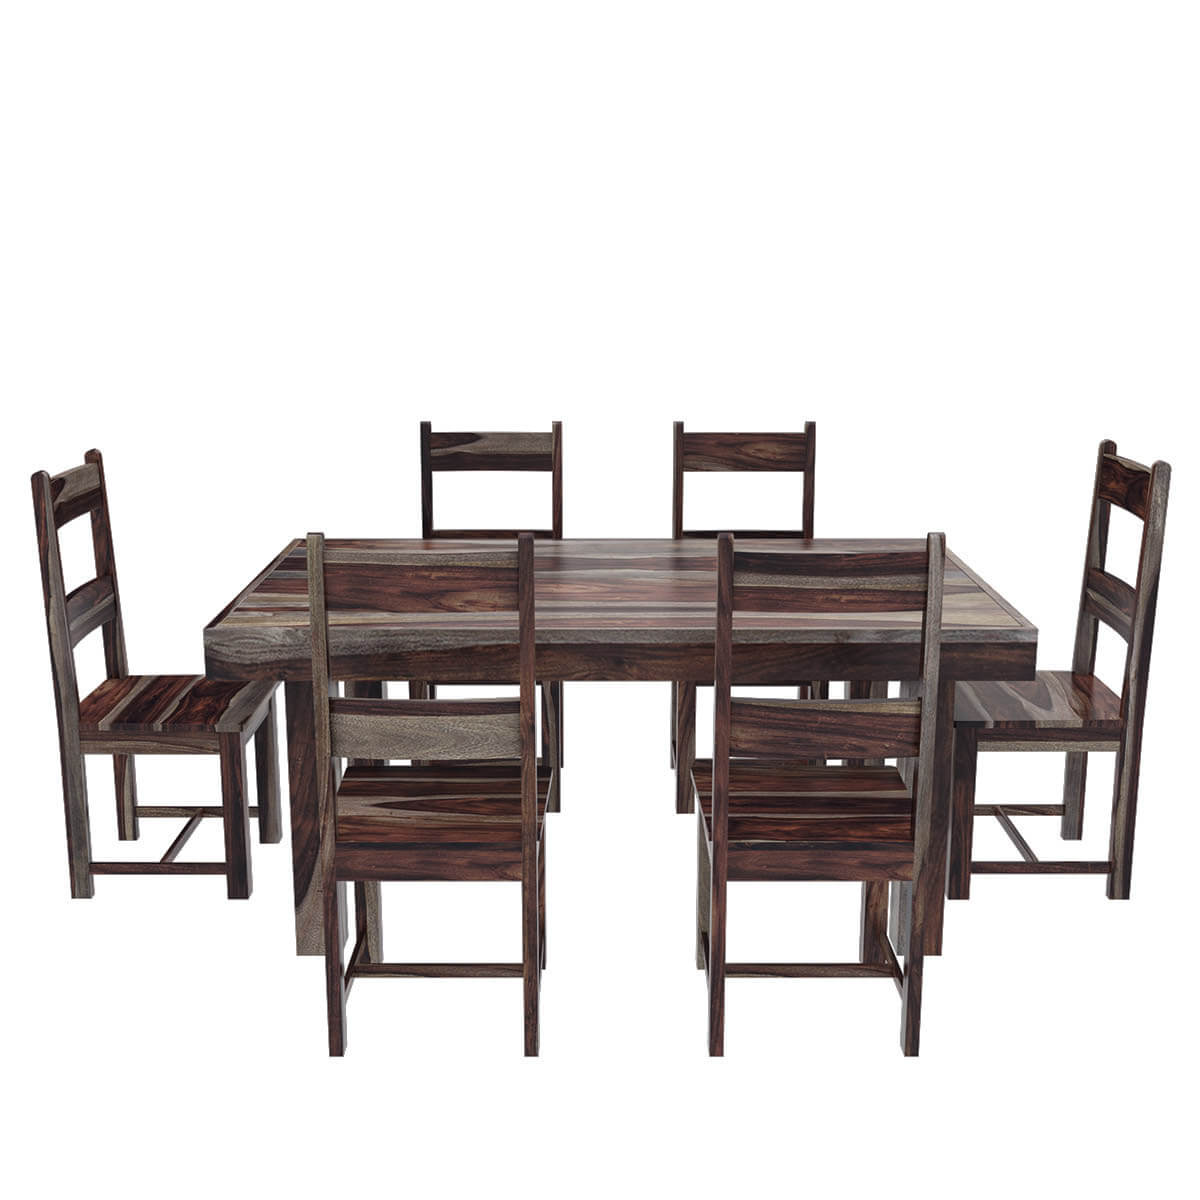 Frisco modern solid wood casual rustic dining room table for Wood dining room furniture